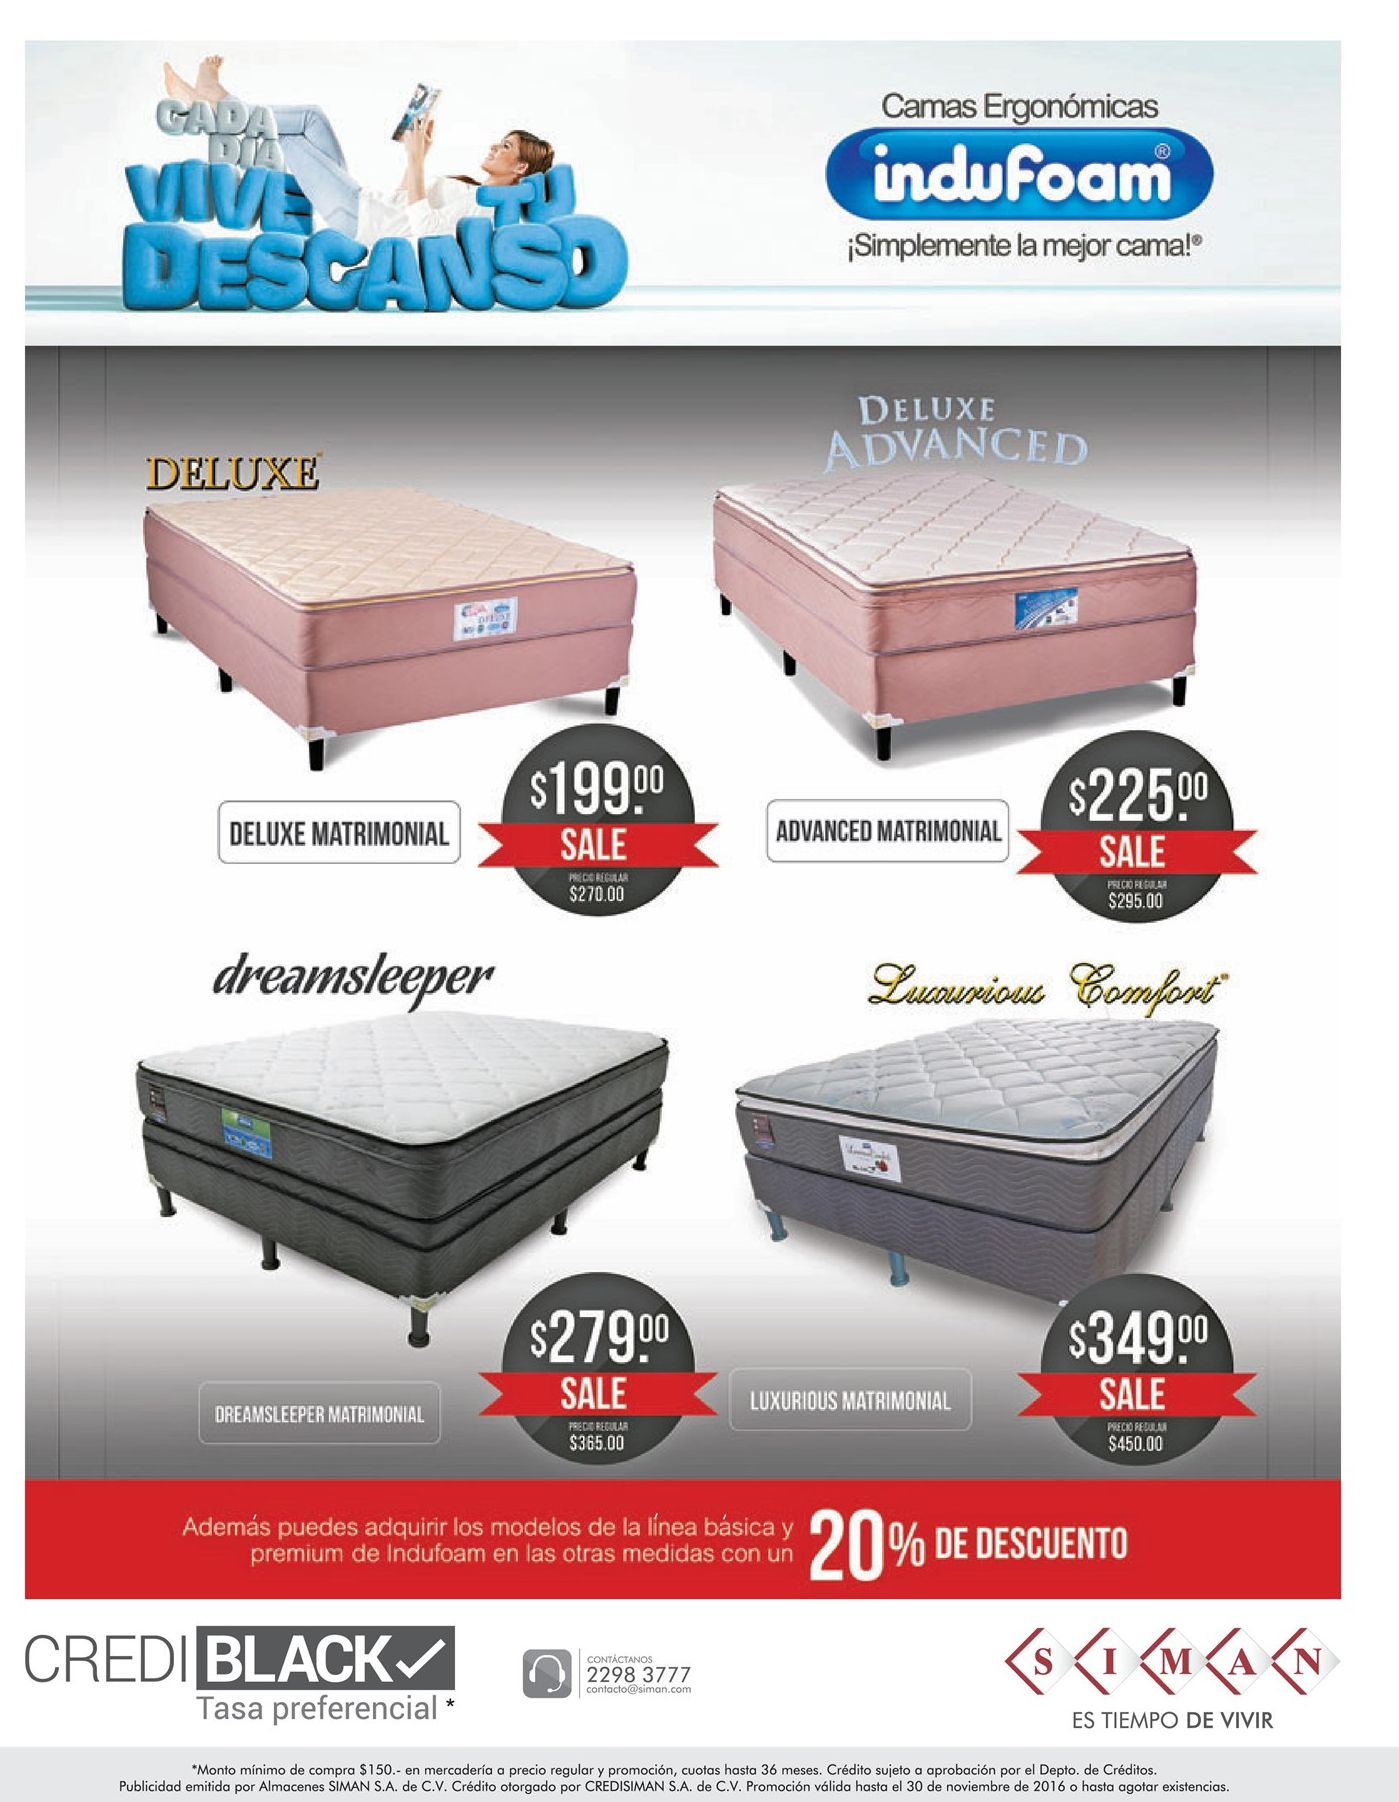 black-friday-2016-deals-bed-dream-sleeper-luxory-confort